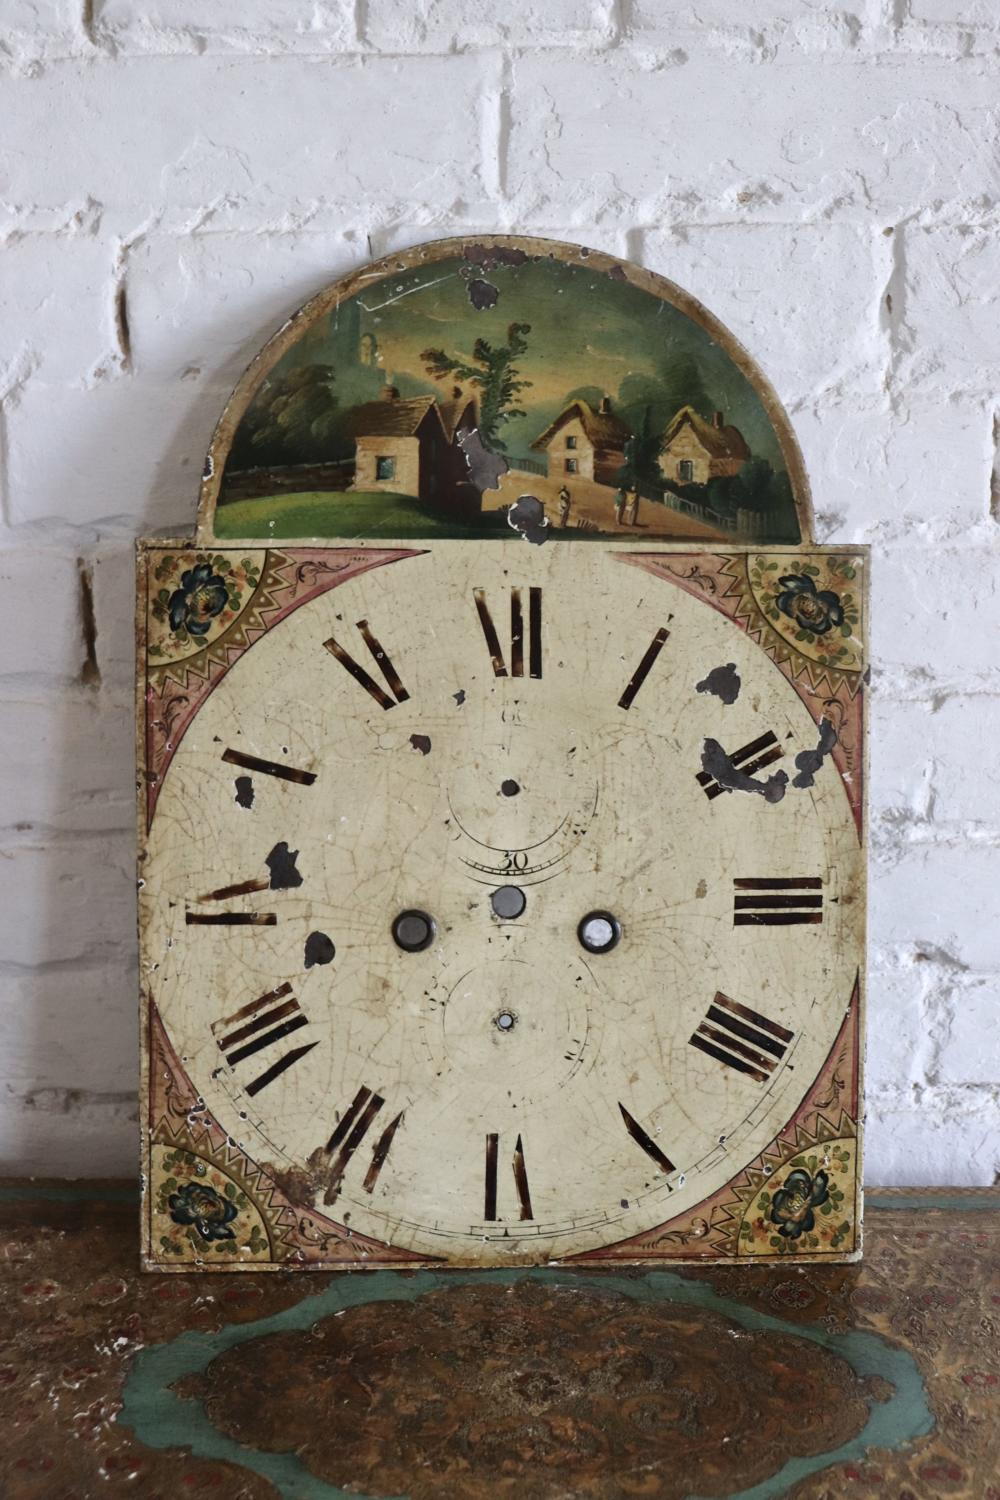 19th century toleware clockface